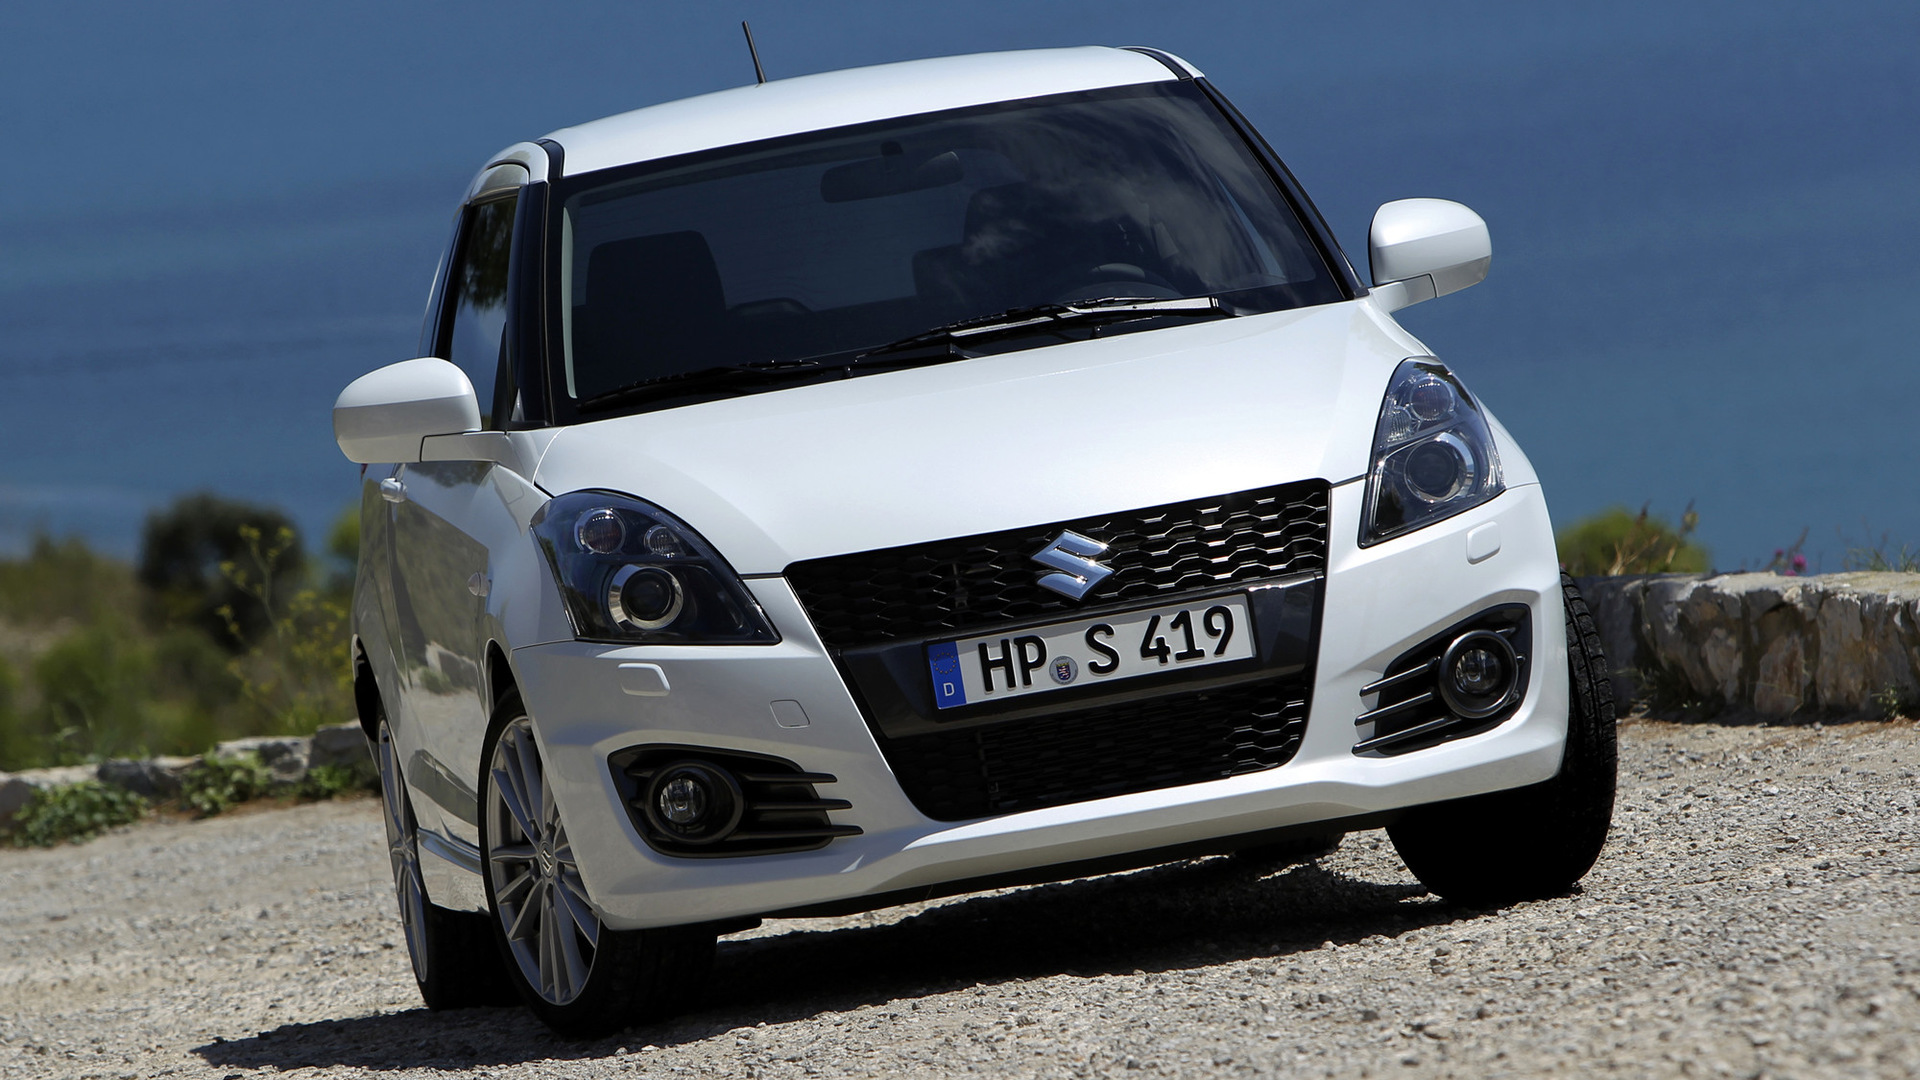 2011 Suzuki Swift Sport   Wallpapers and HD Images Car Pixel 1920x1080